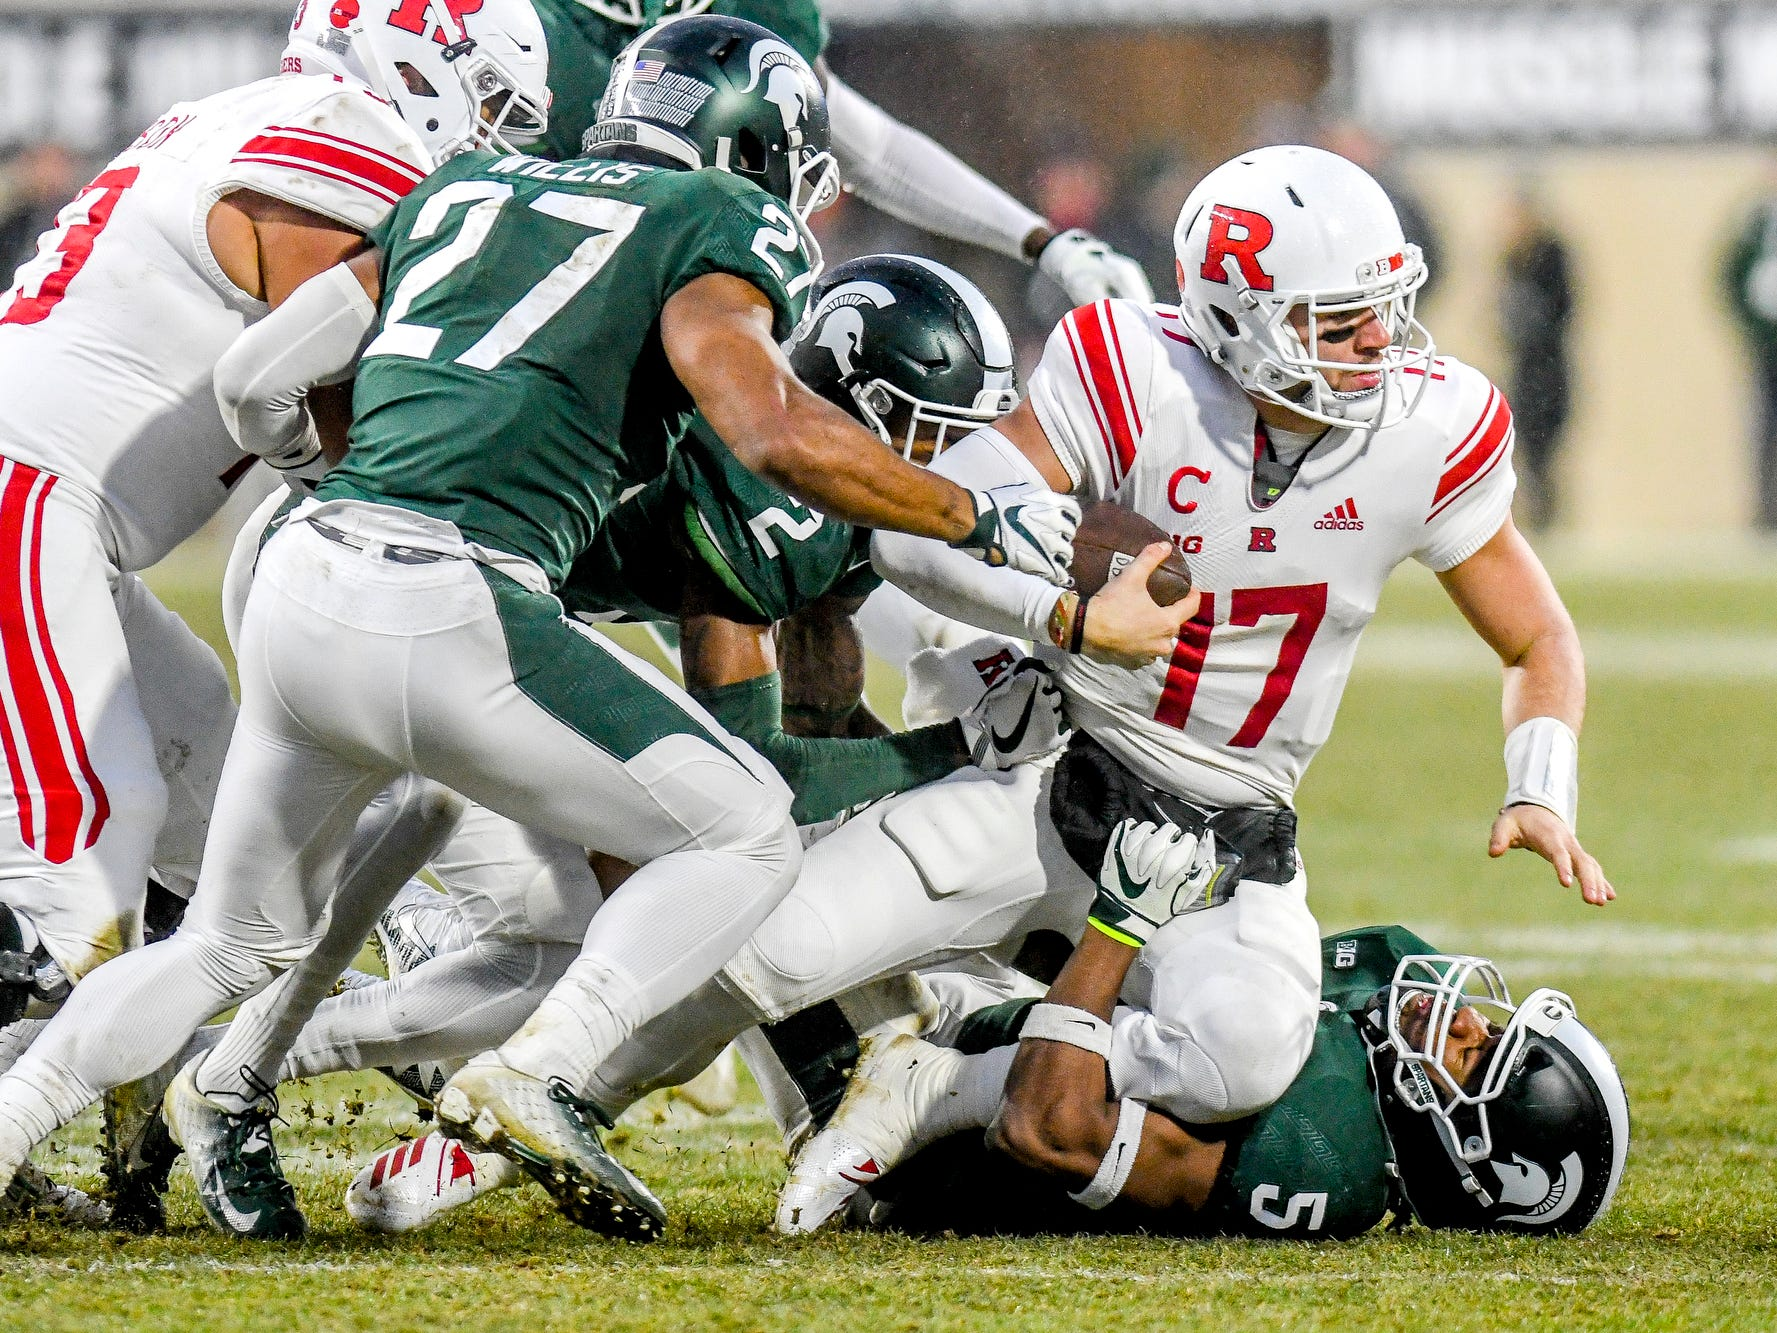 Michigan State's Andrew Dowell, bottom, and other defensive players tackle Rutgers quarterback Giovanni Rescigno during the first quarter on Saturday, Nov. 24, 2018, at Spartan Stadium in East Lansing.